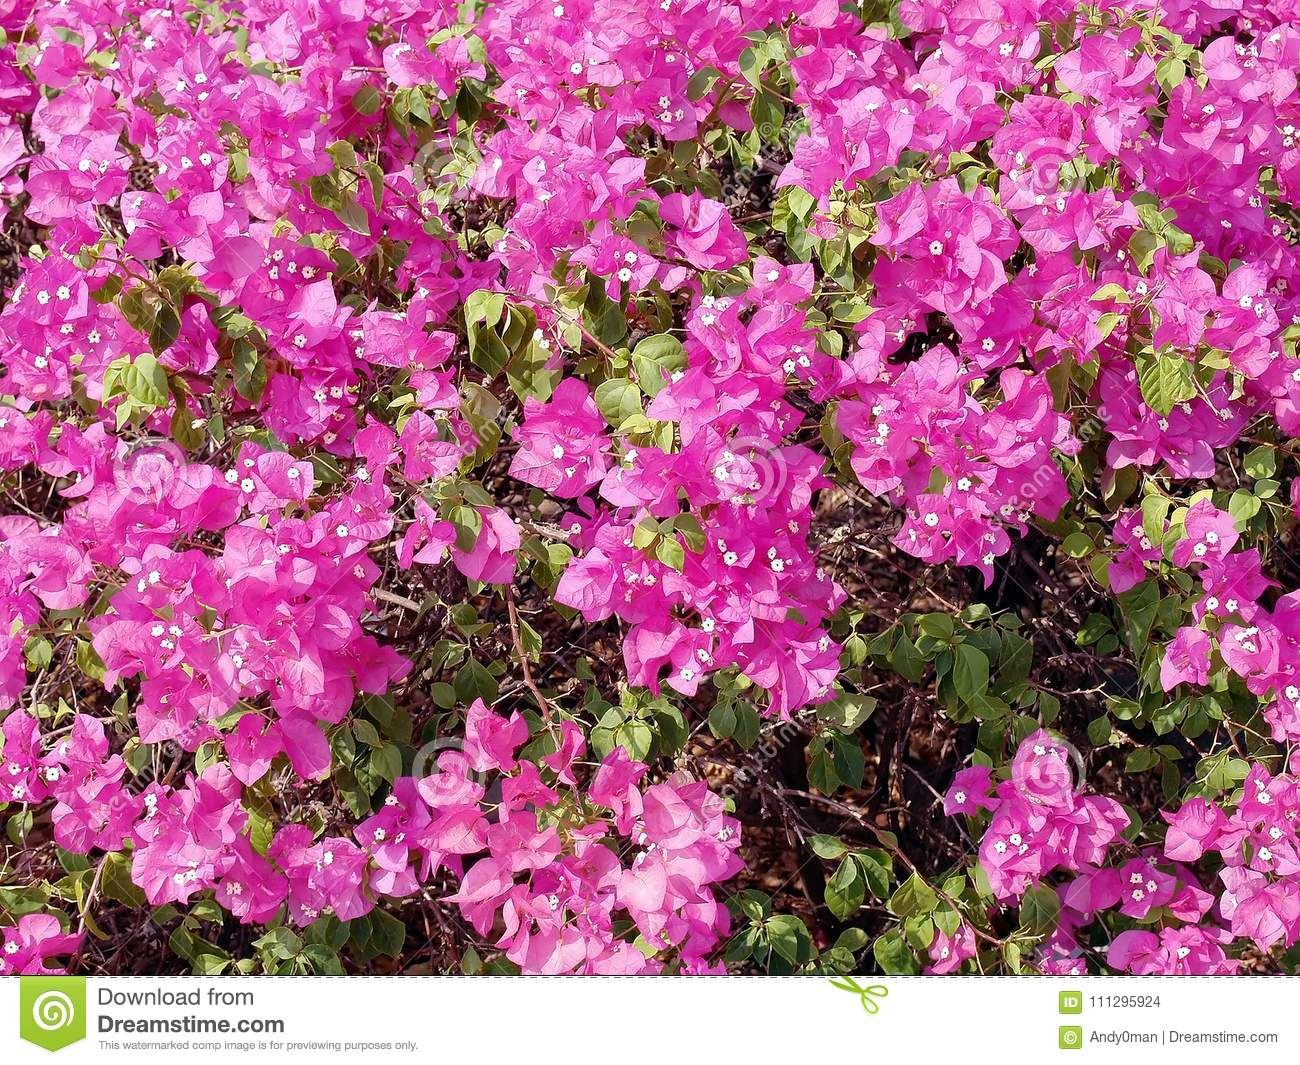 Blooming pink flowers bougainvillea background colorful tropical download blooming pink flowers bougainvillea background colorful tropical flower ornamental climbing plant for mightylinksfo